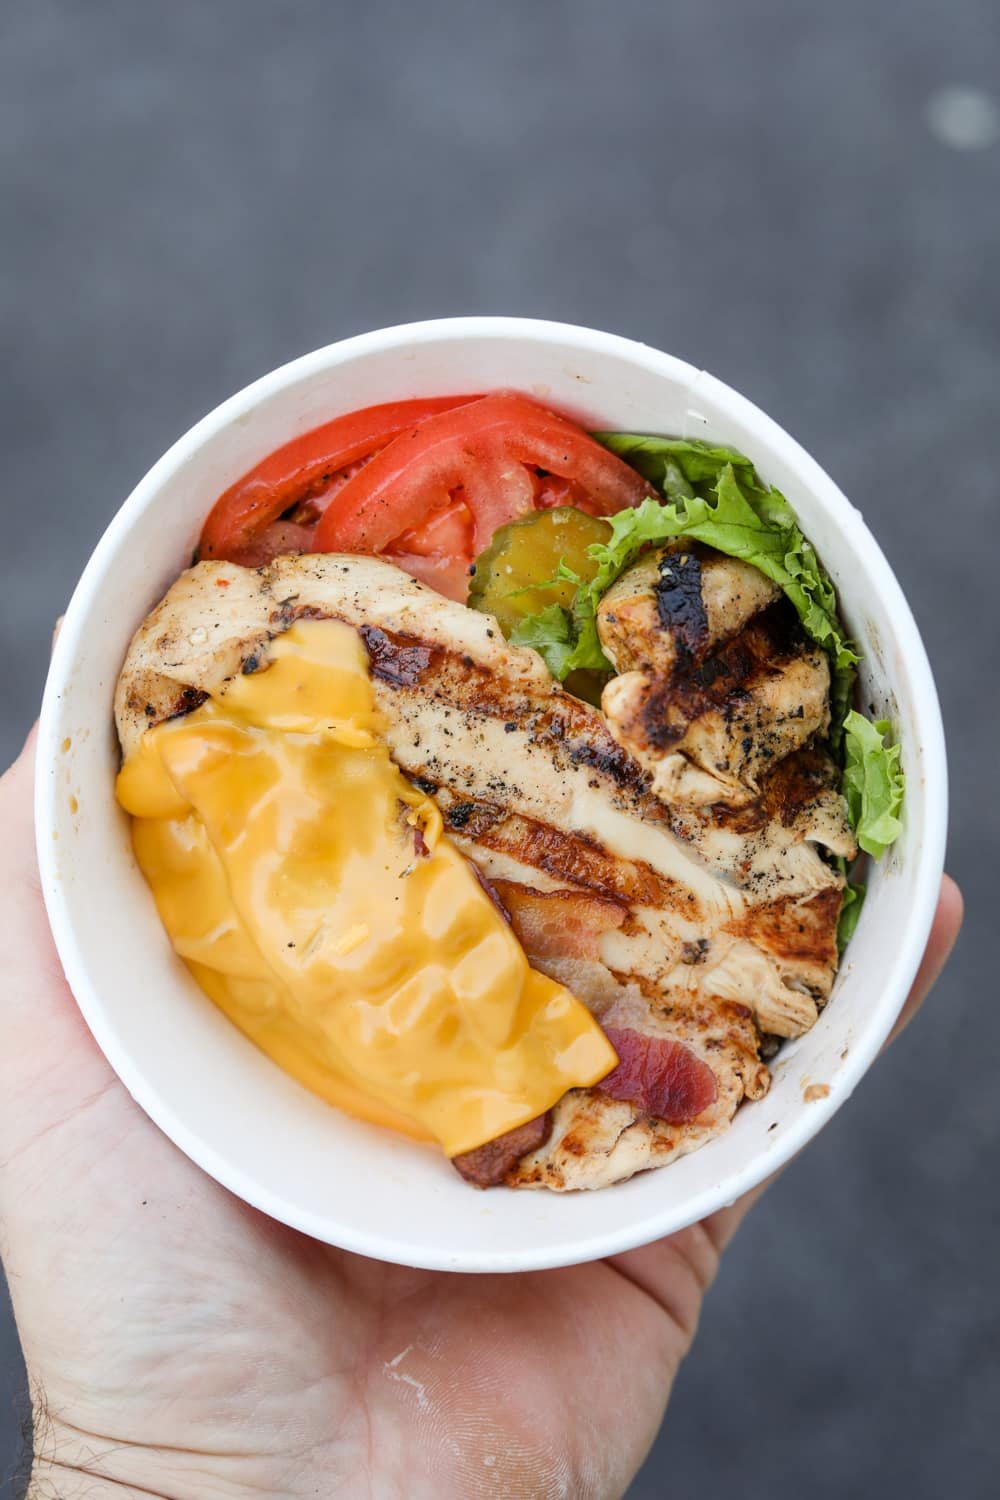 A hand holding a cup filled with a piece of grilled chicken, bacon, a slice of American cheese, lettuce, pickles, and tomato.